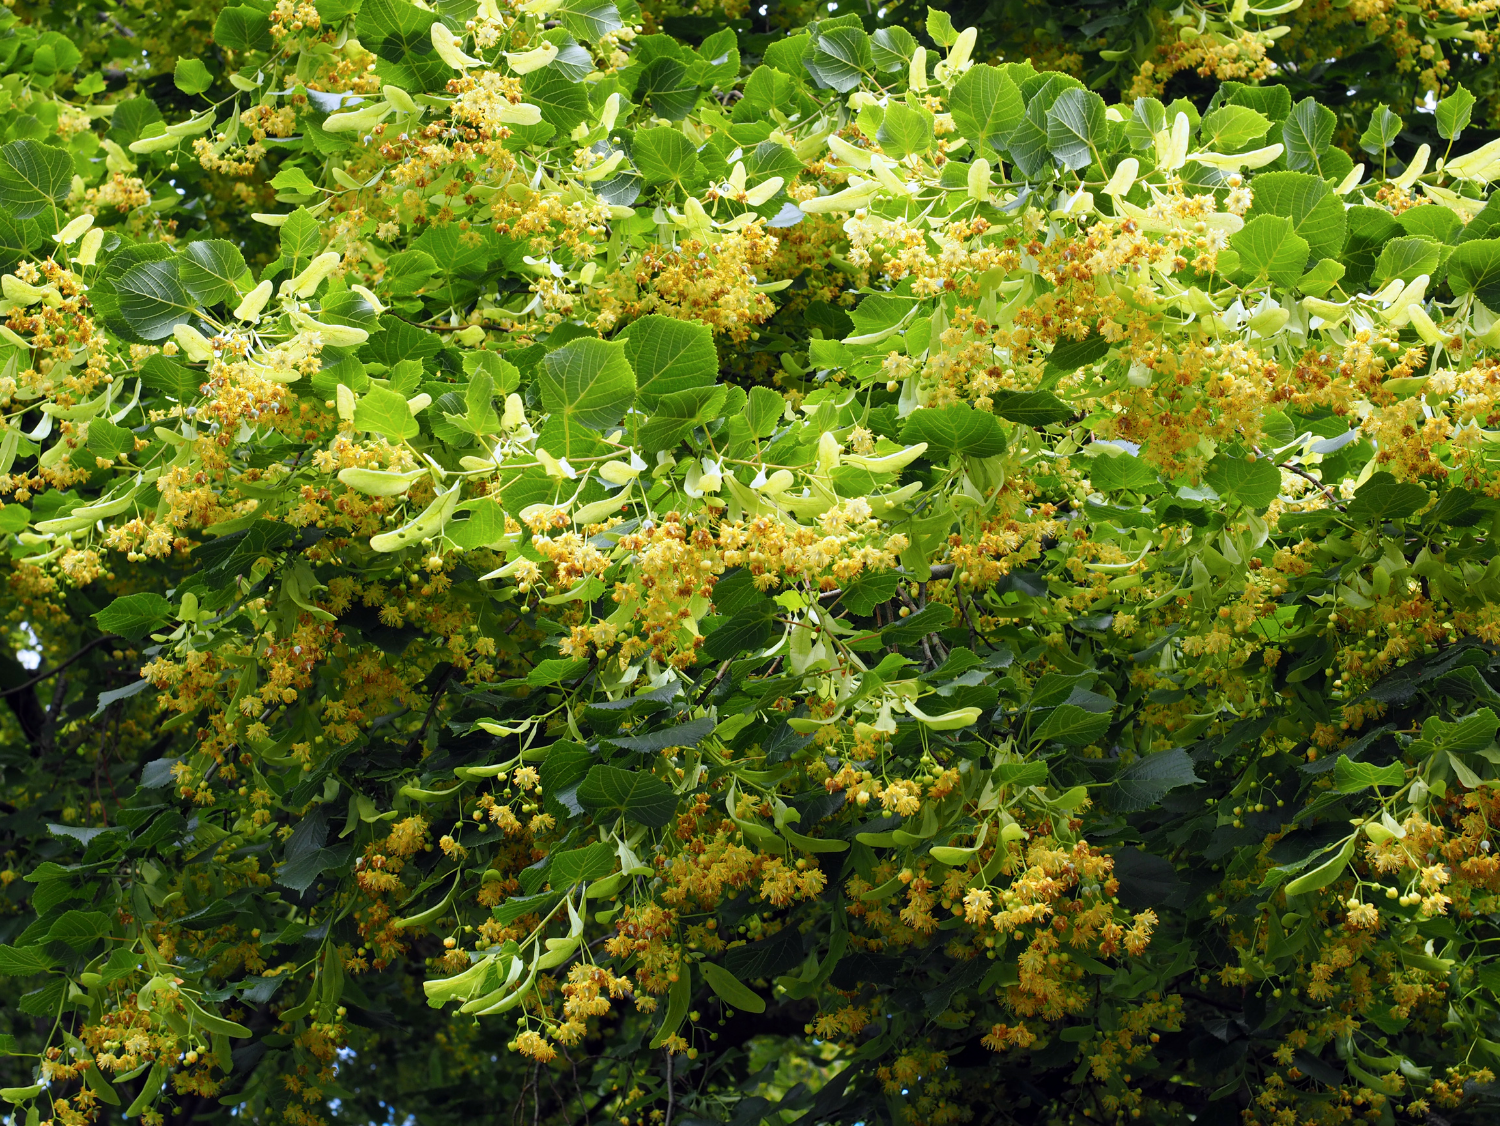 Lime or Linden - A Foraging Guide to Its Food, Medicine and Other Uses